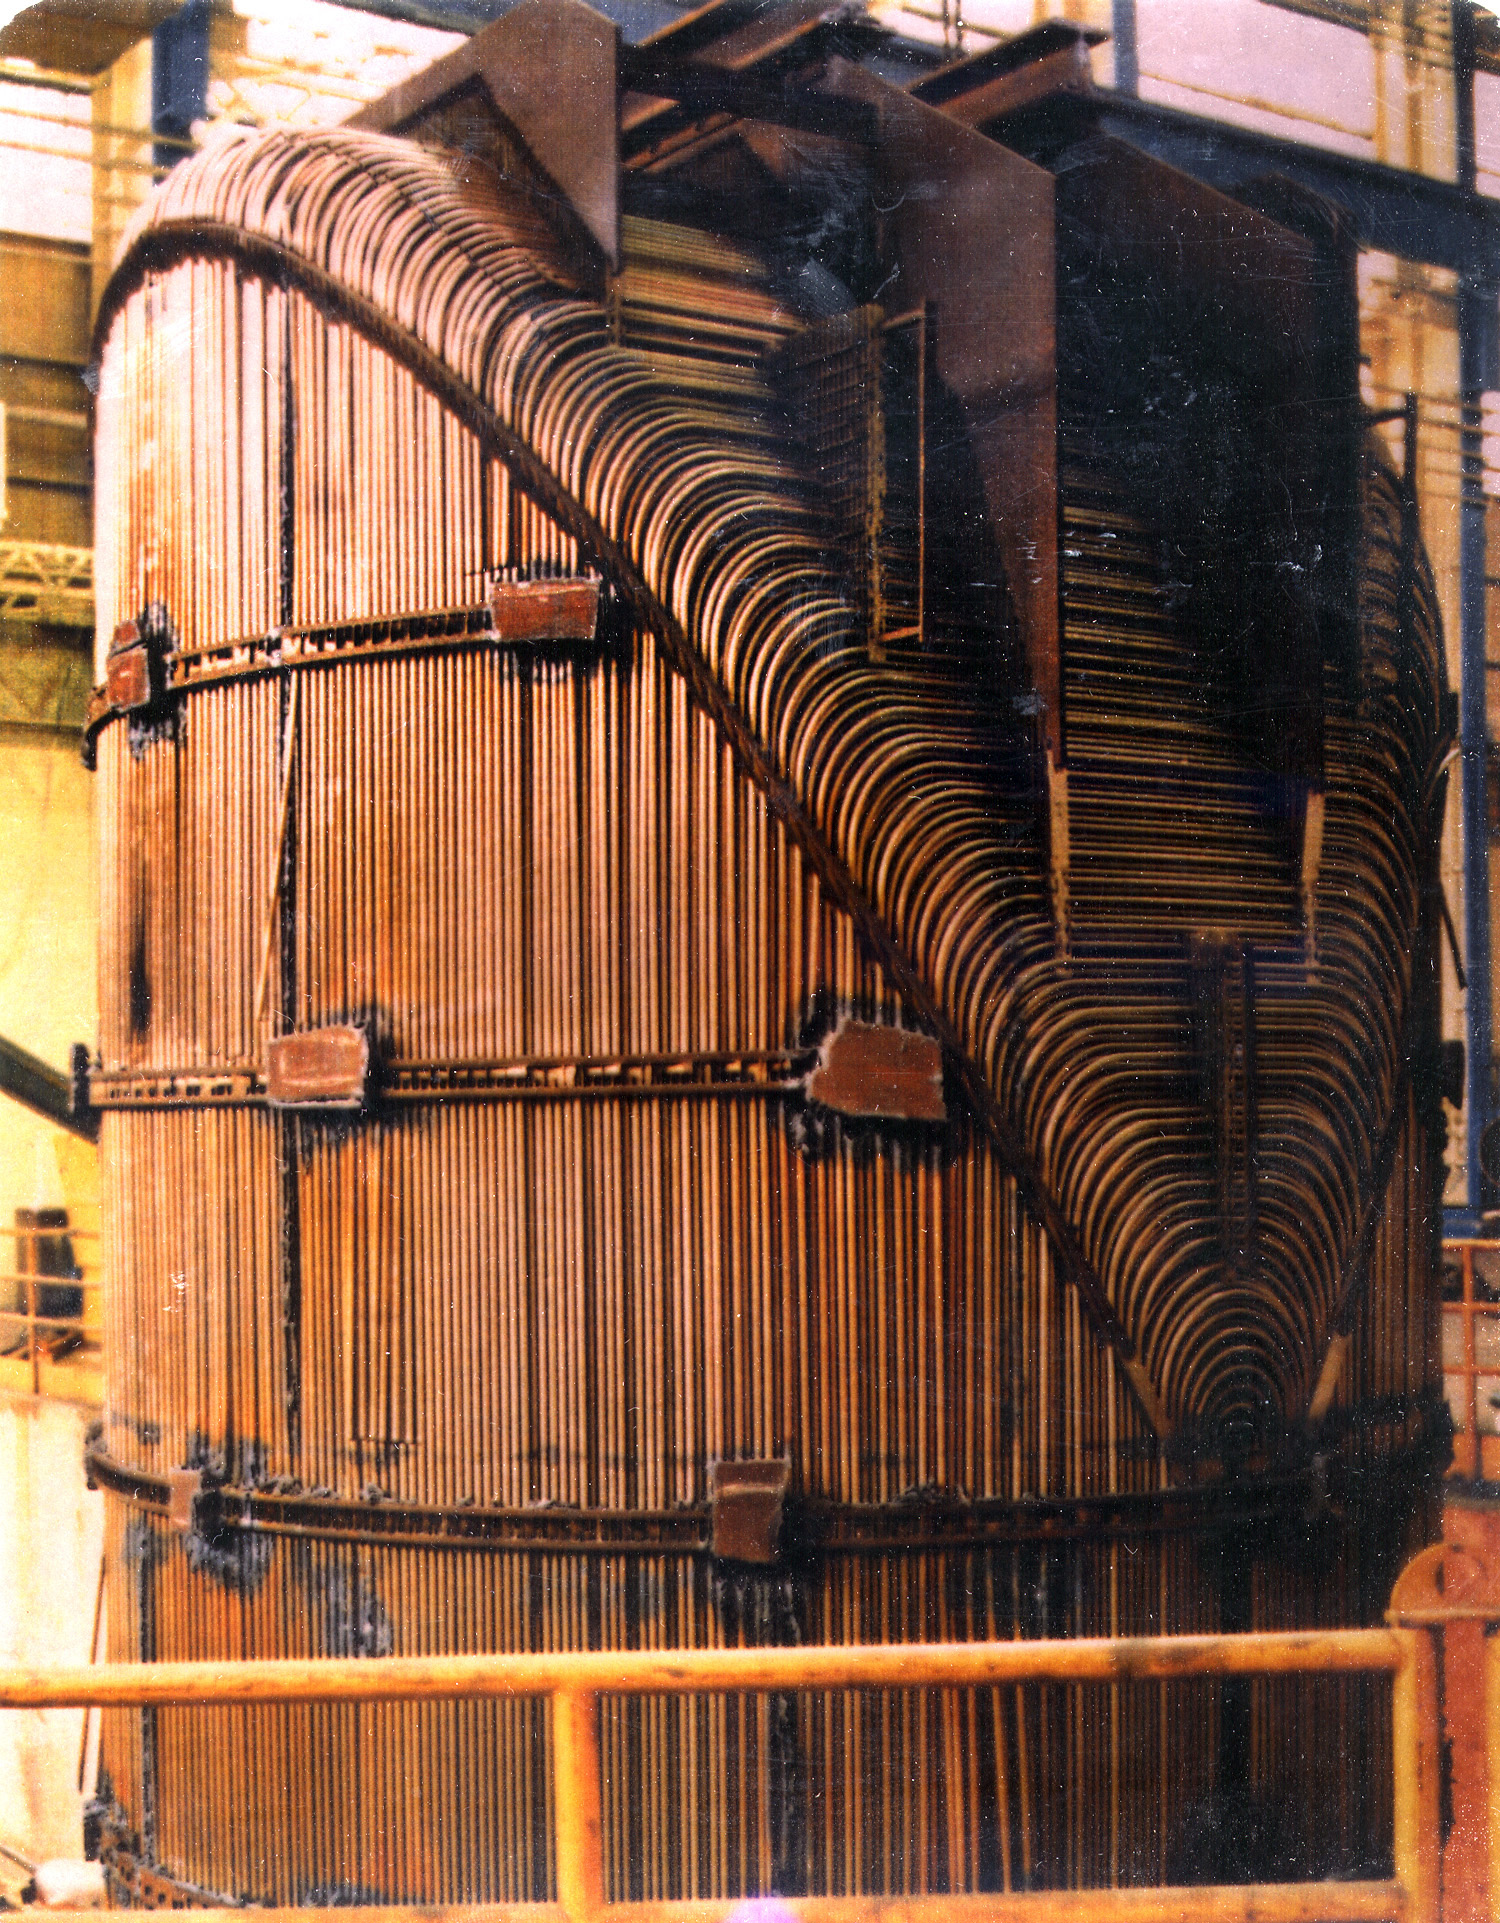 Steam Generator in Nuclear Power Plant Nuclear_steam_generator.jpg